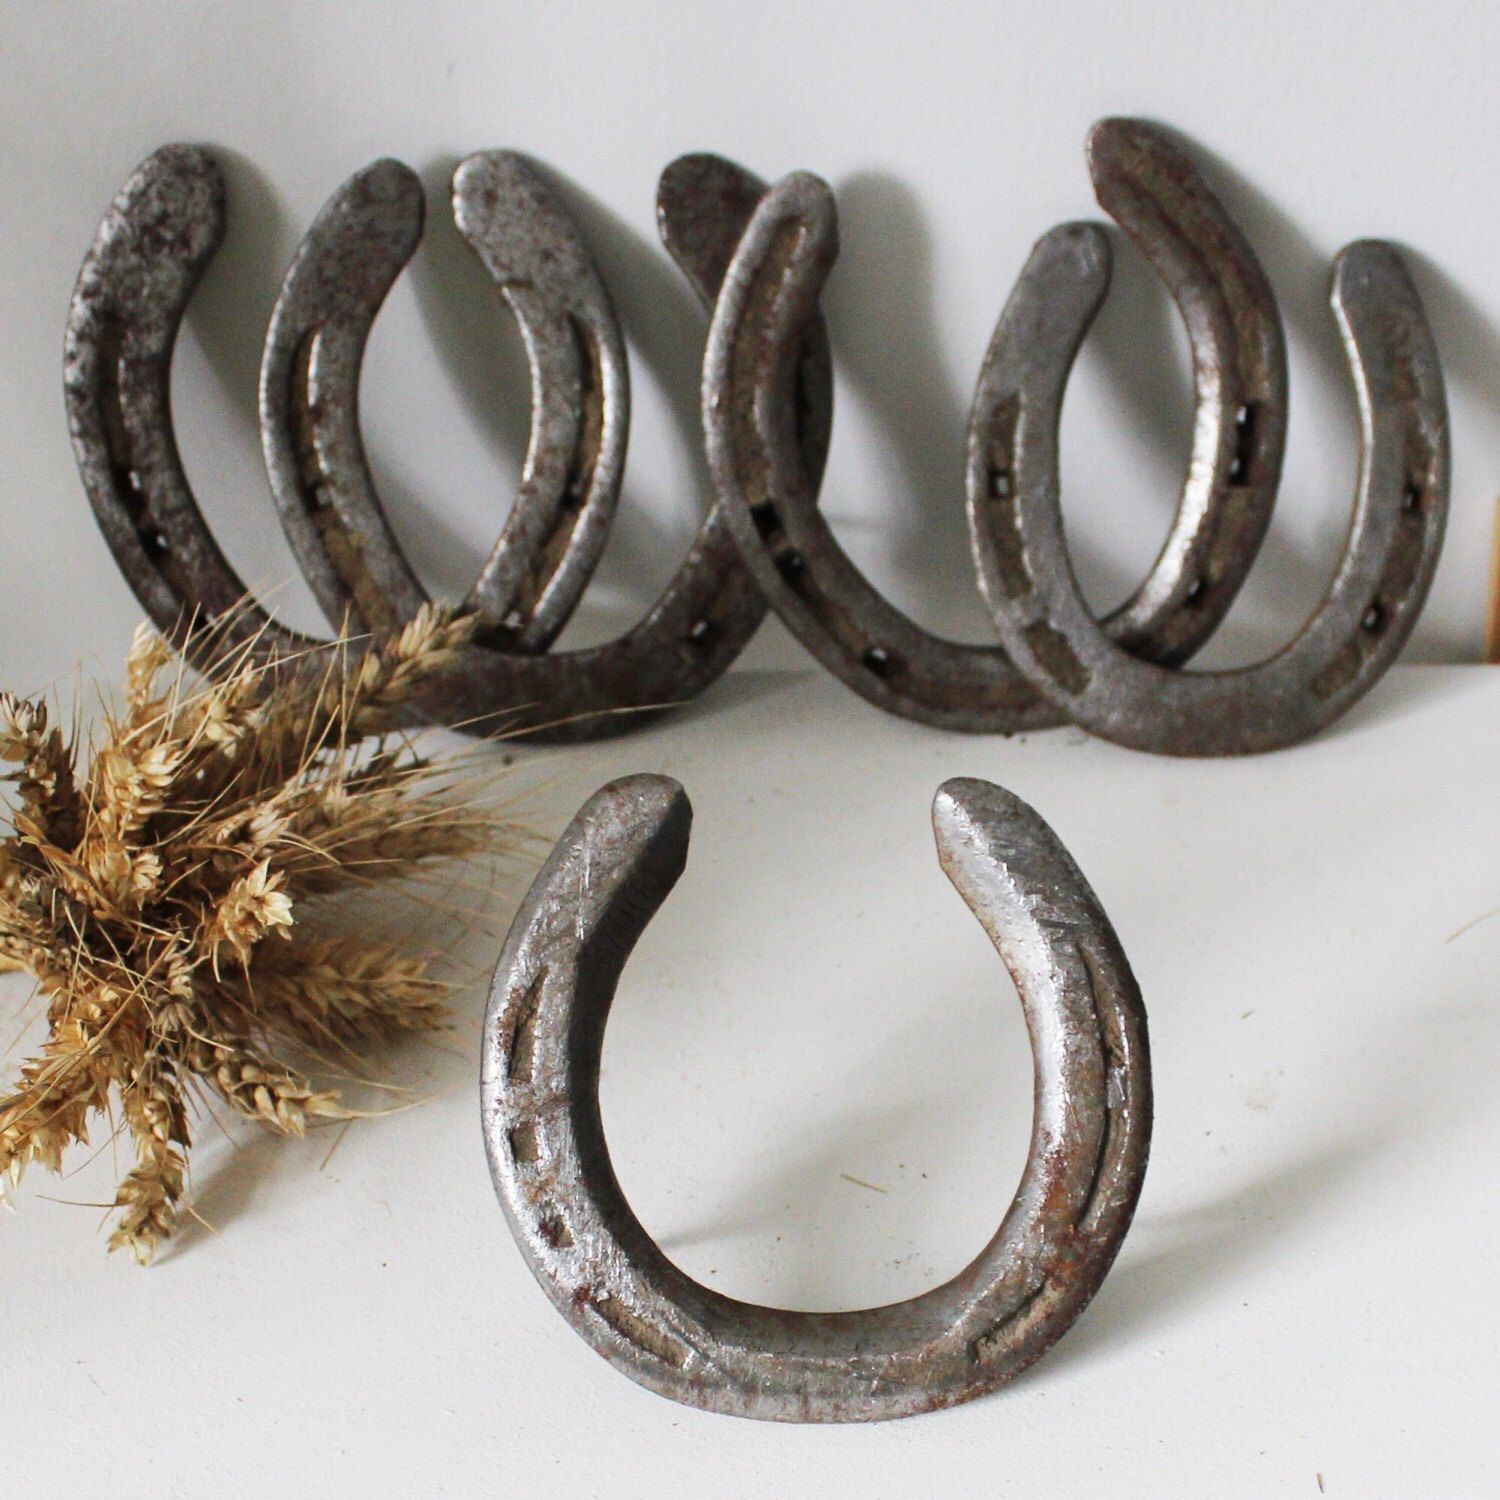 Old Used Rusted Iron Horseshoes As A Good Luck Talisman Great For